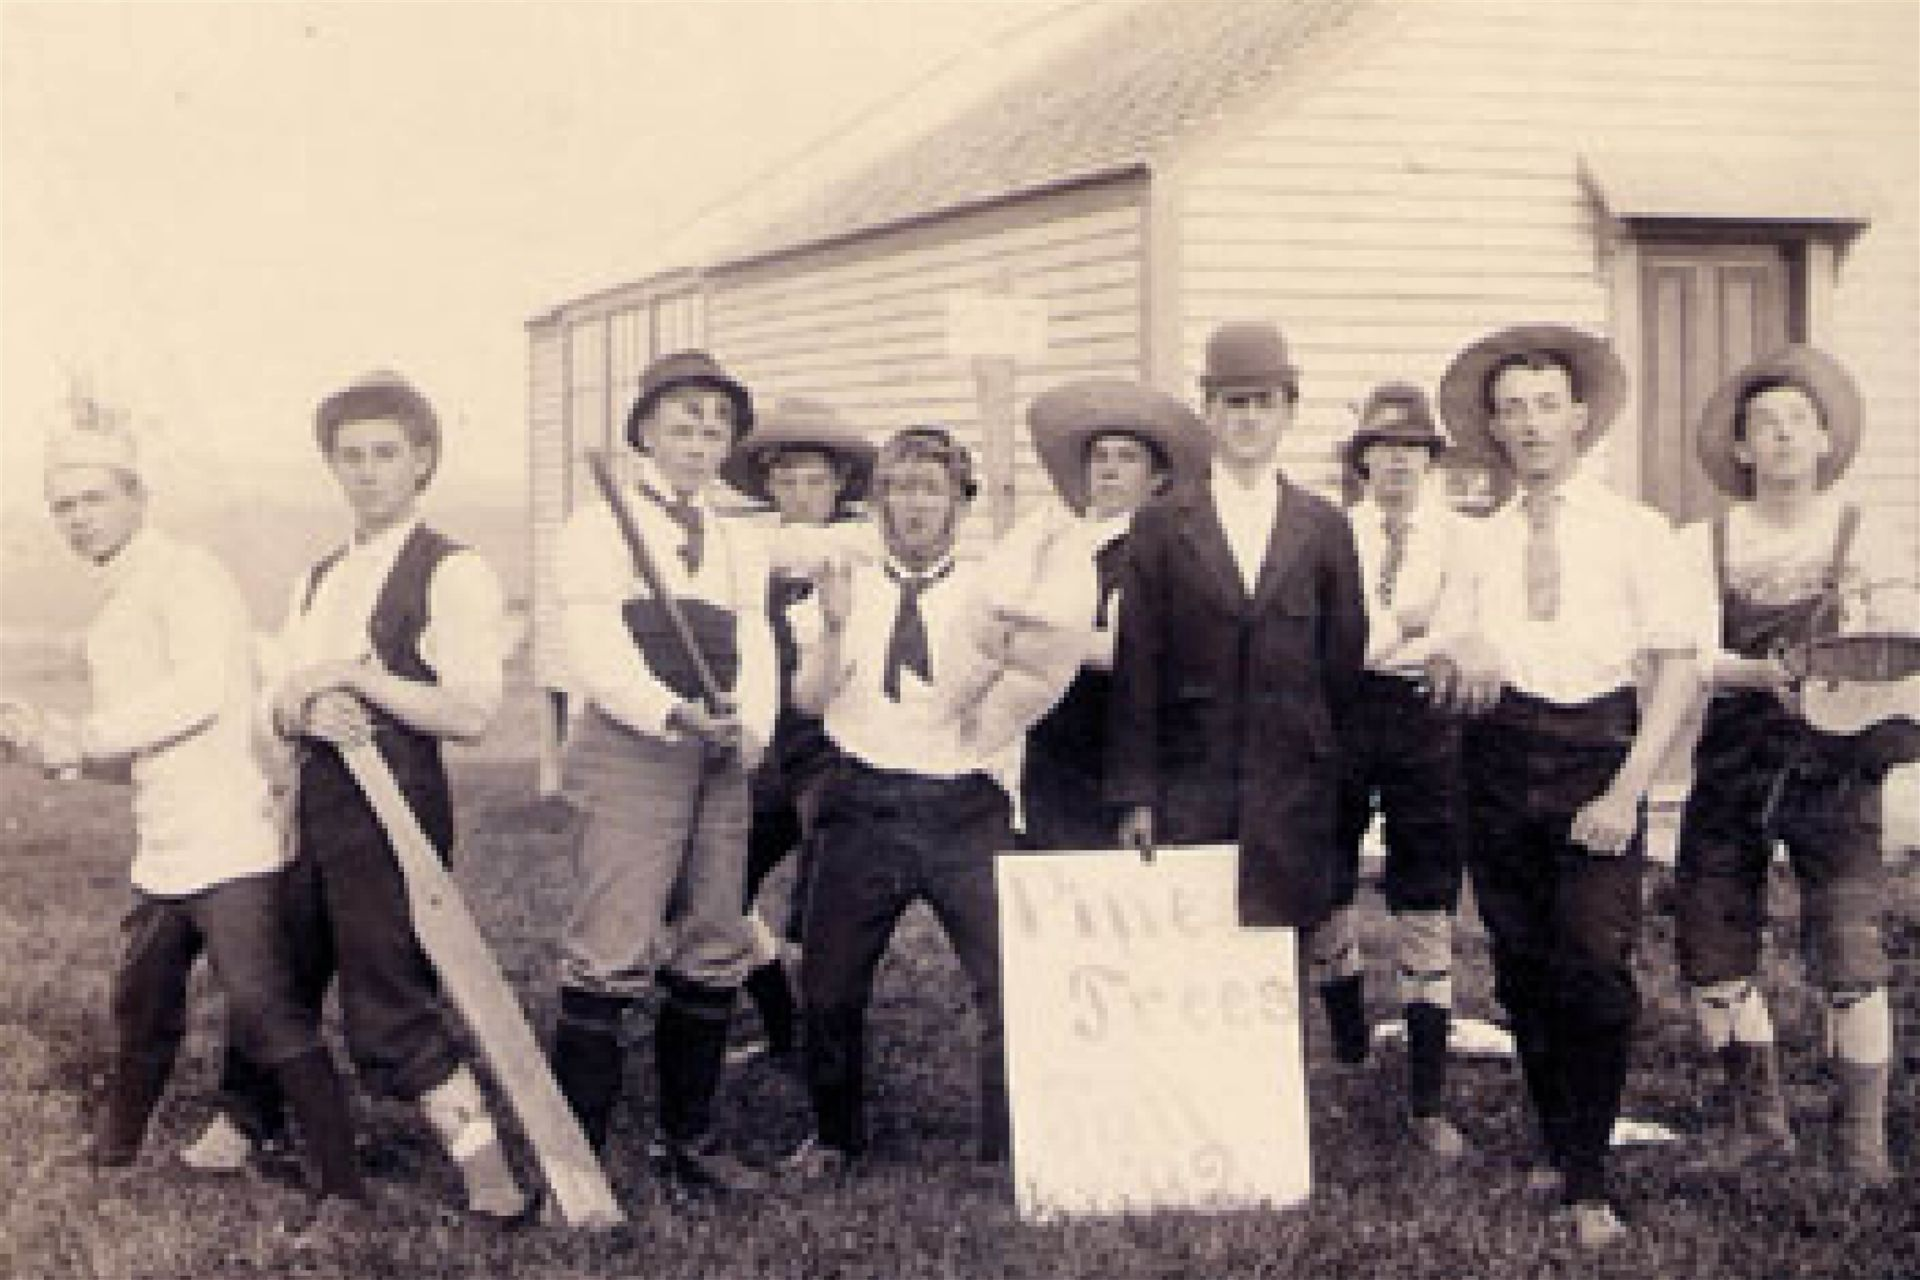 1861: Baseball is introduced to school.